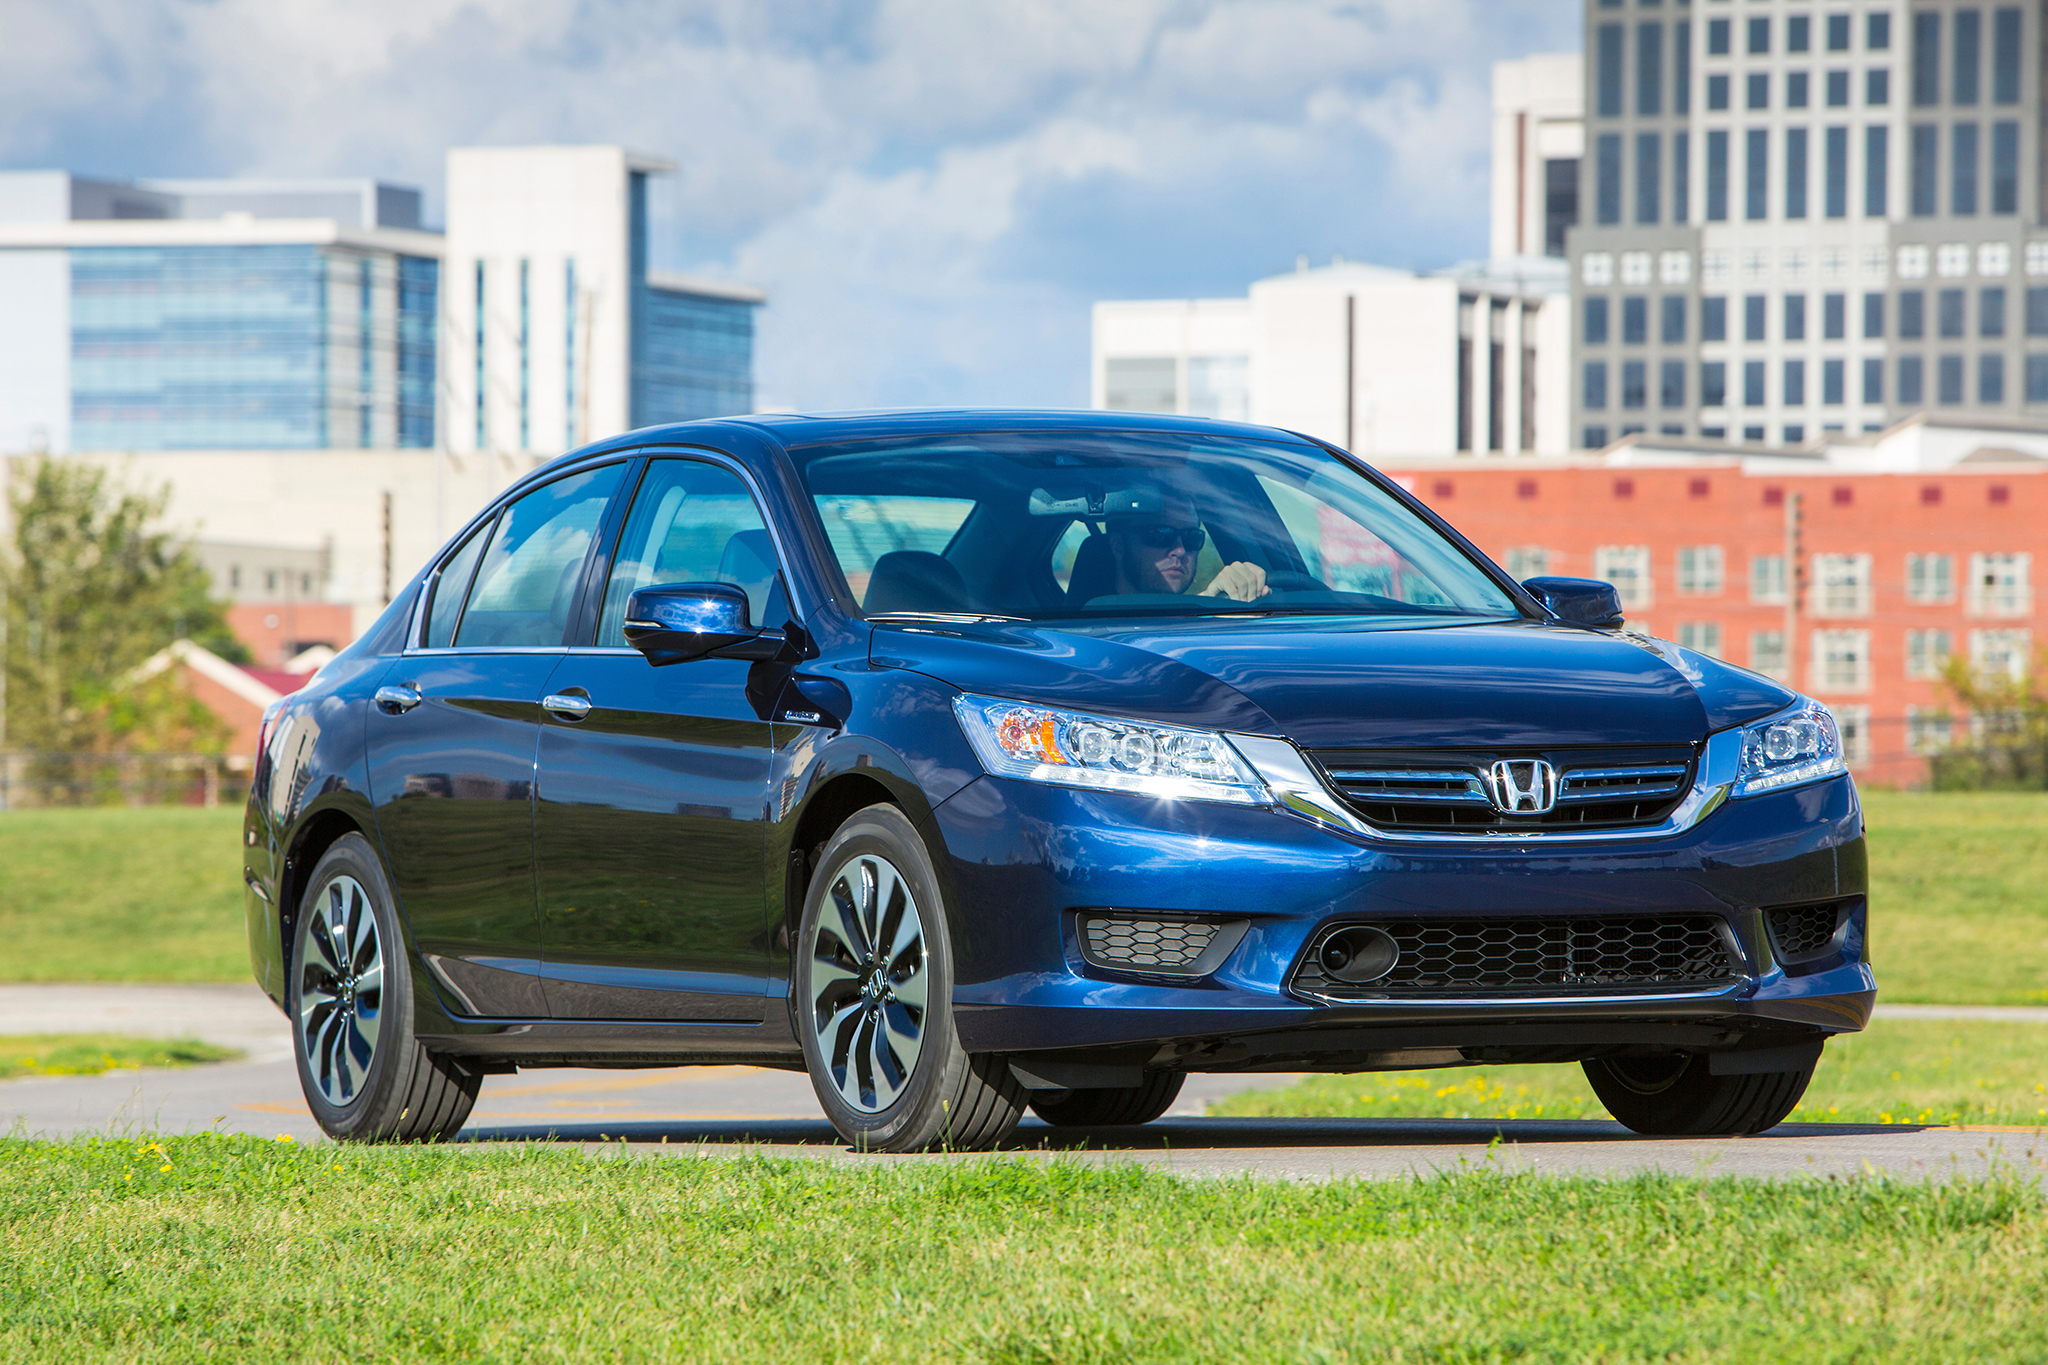 Superb 2014 Honda Accord Hybrid First Drive